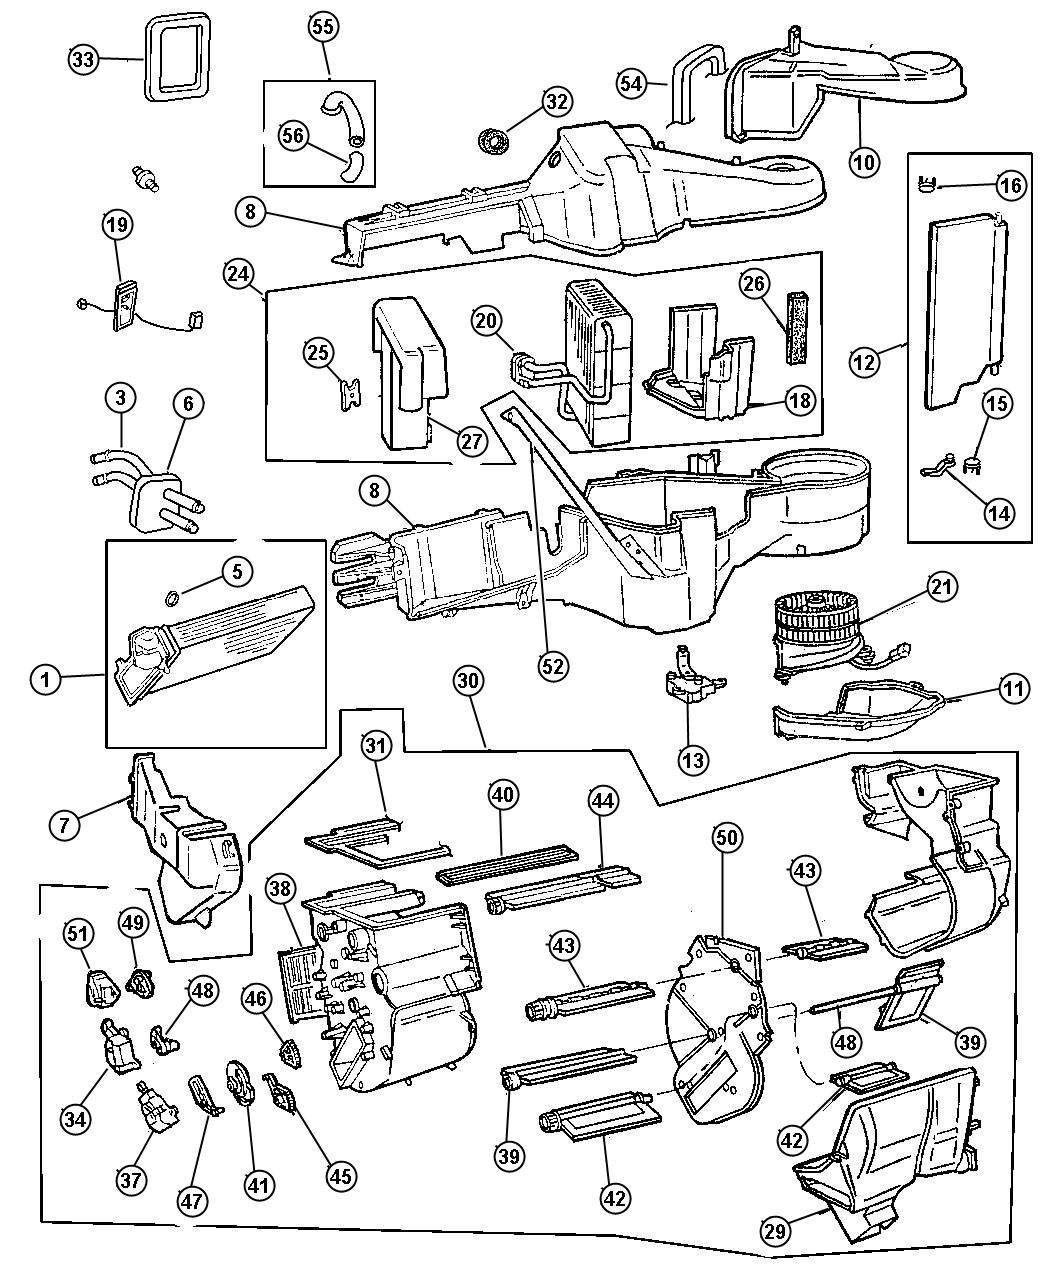 Dodge Caravan Wiring Diagram Collection